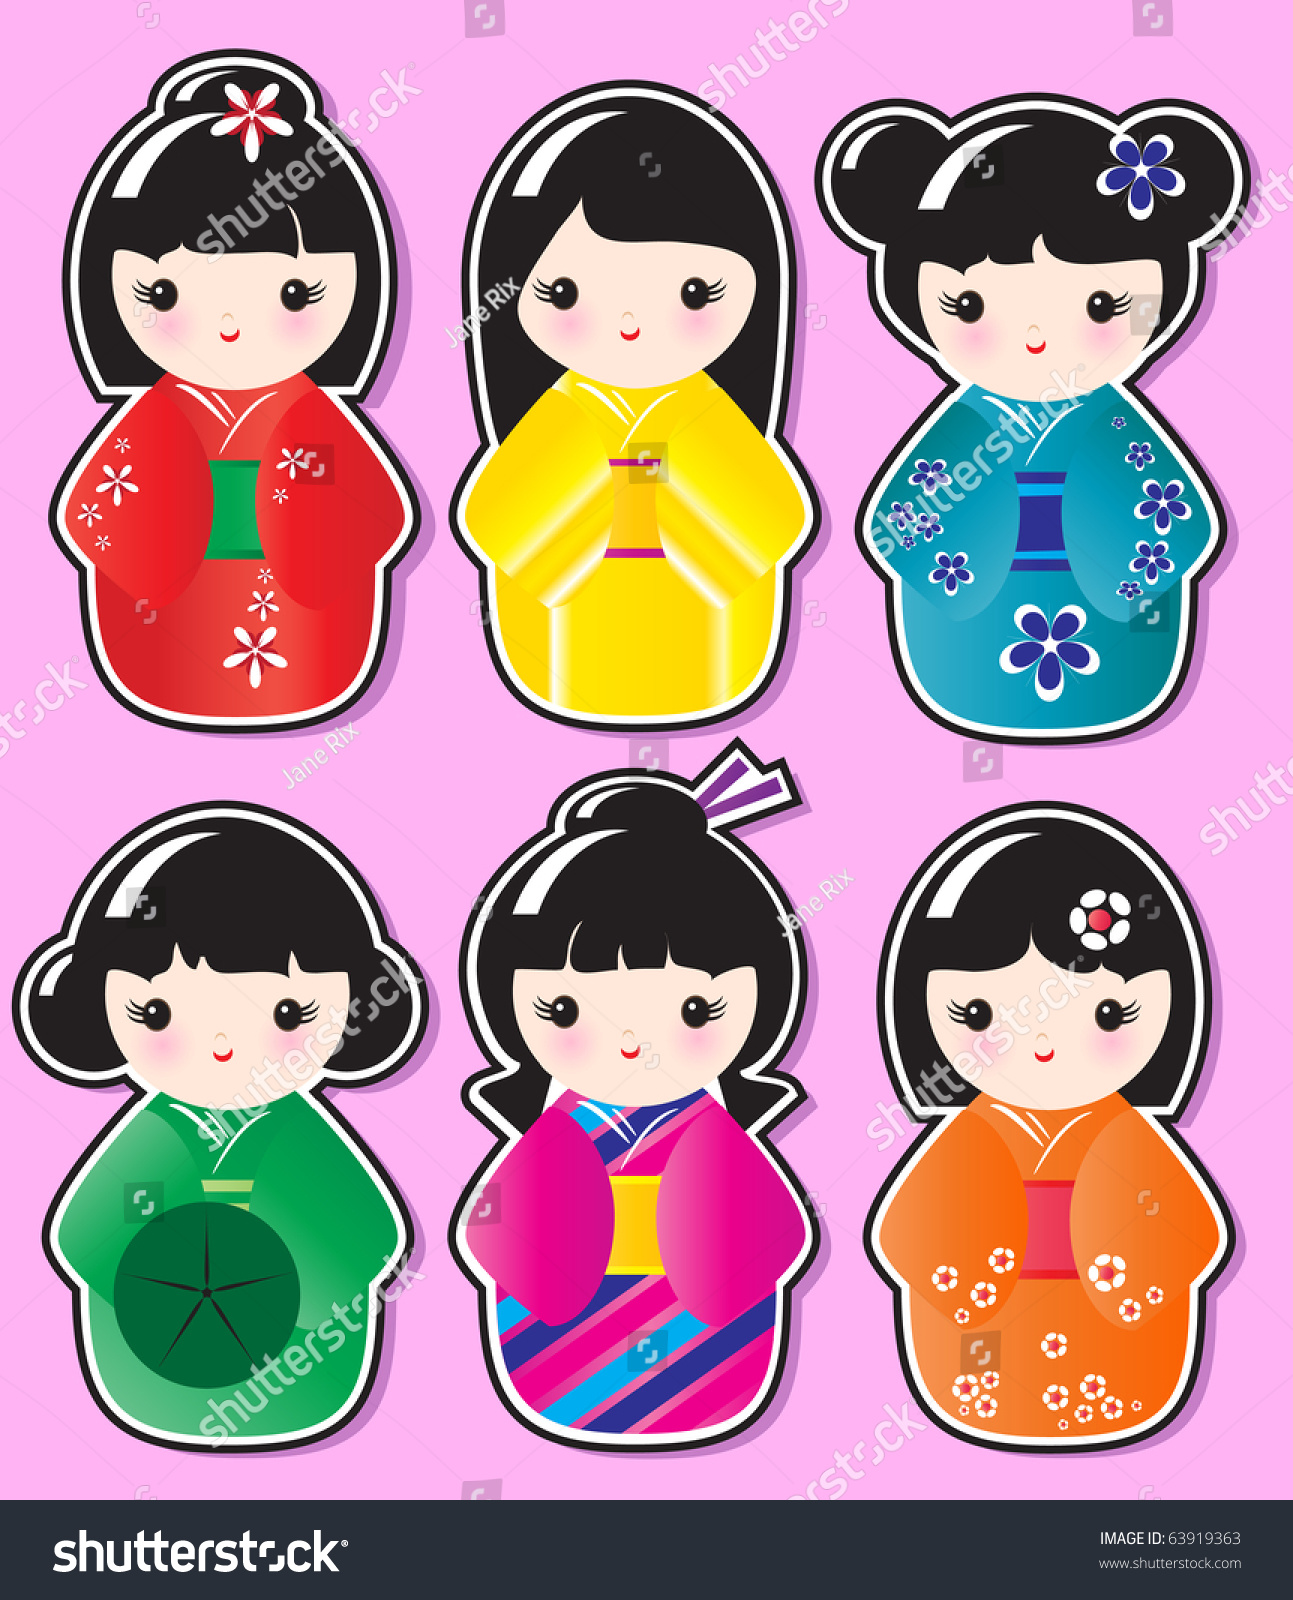 Kokeshi doll stickers various designs on stock vector for Stickers kokeshi